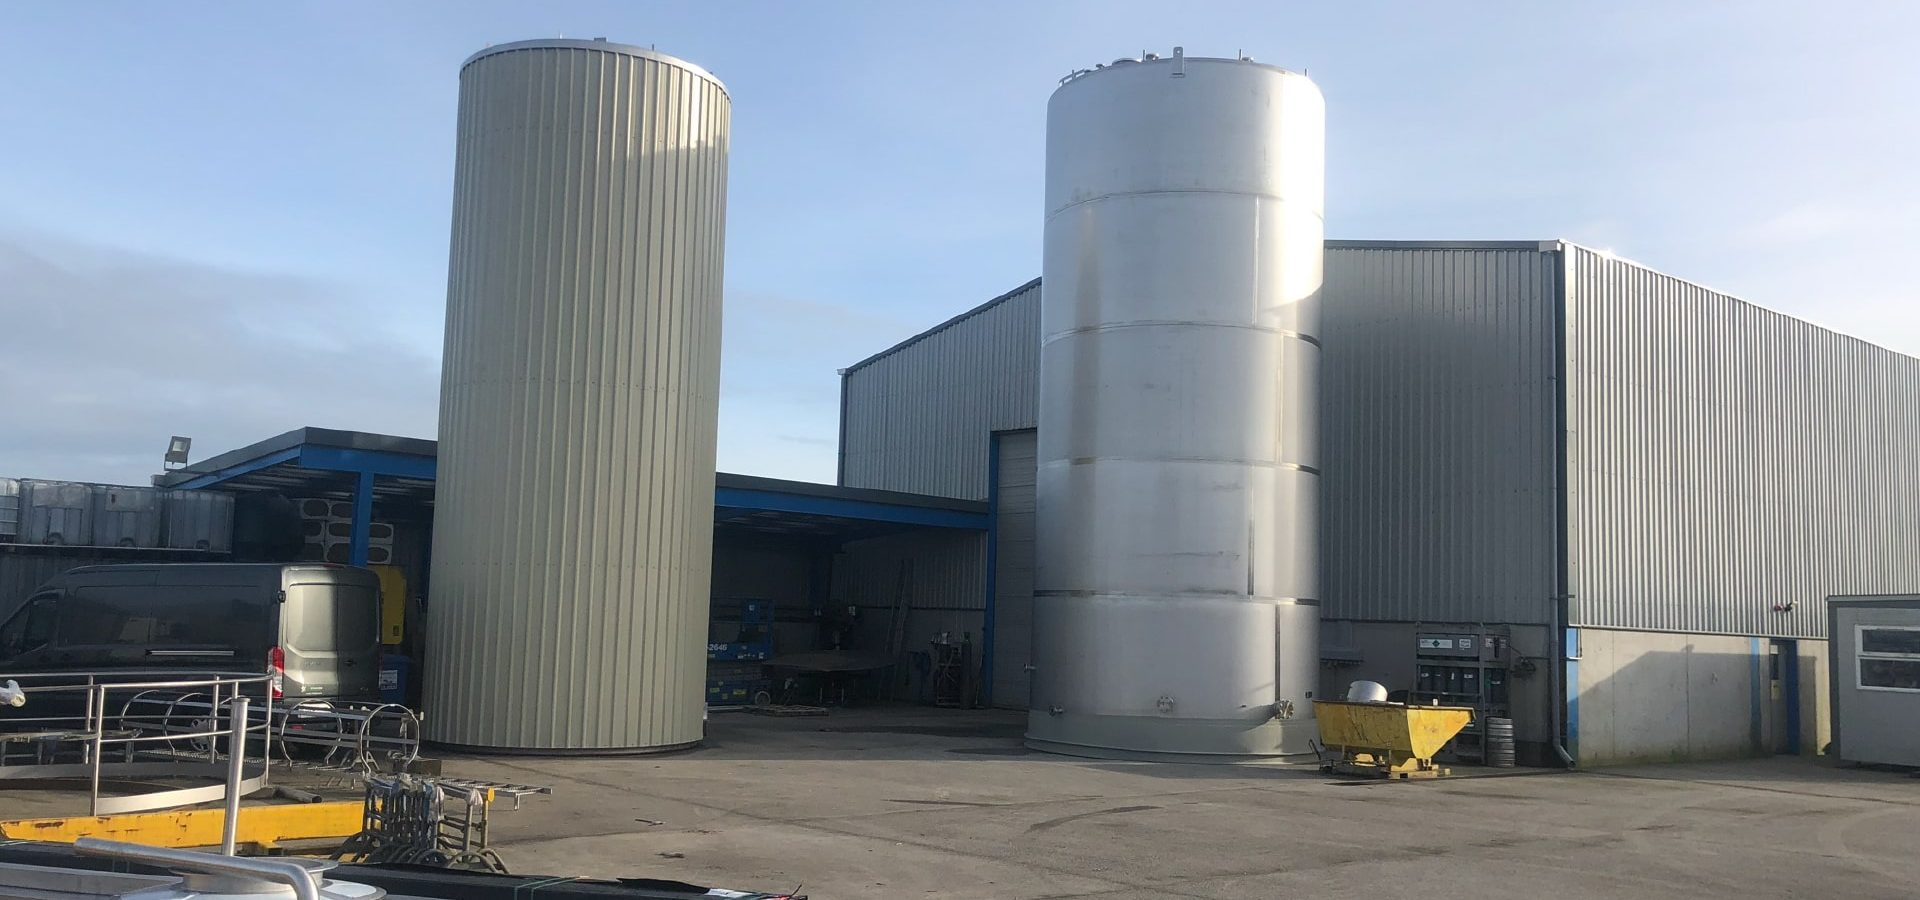 Large Vessels - SX Engineering - 2 x silos nearing completion